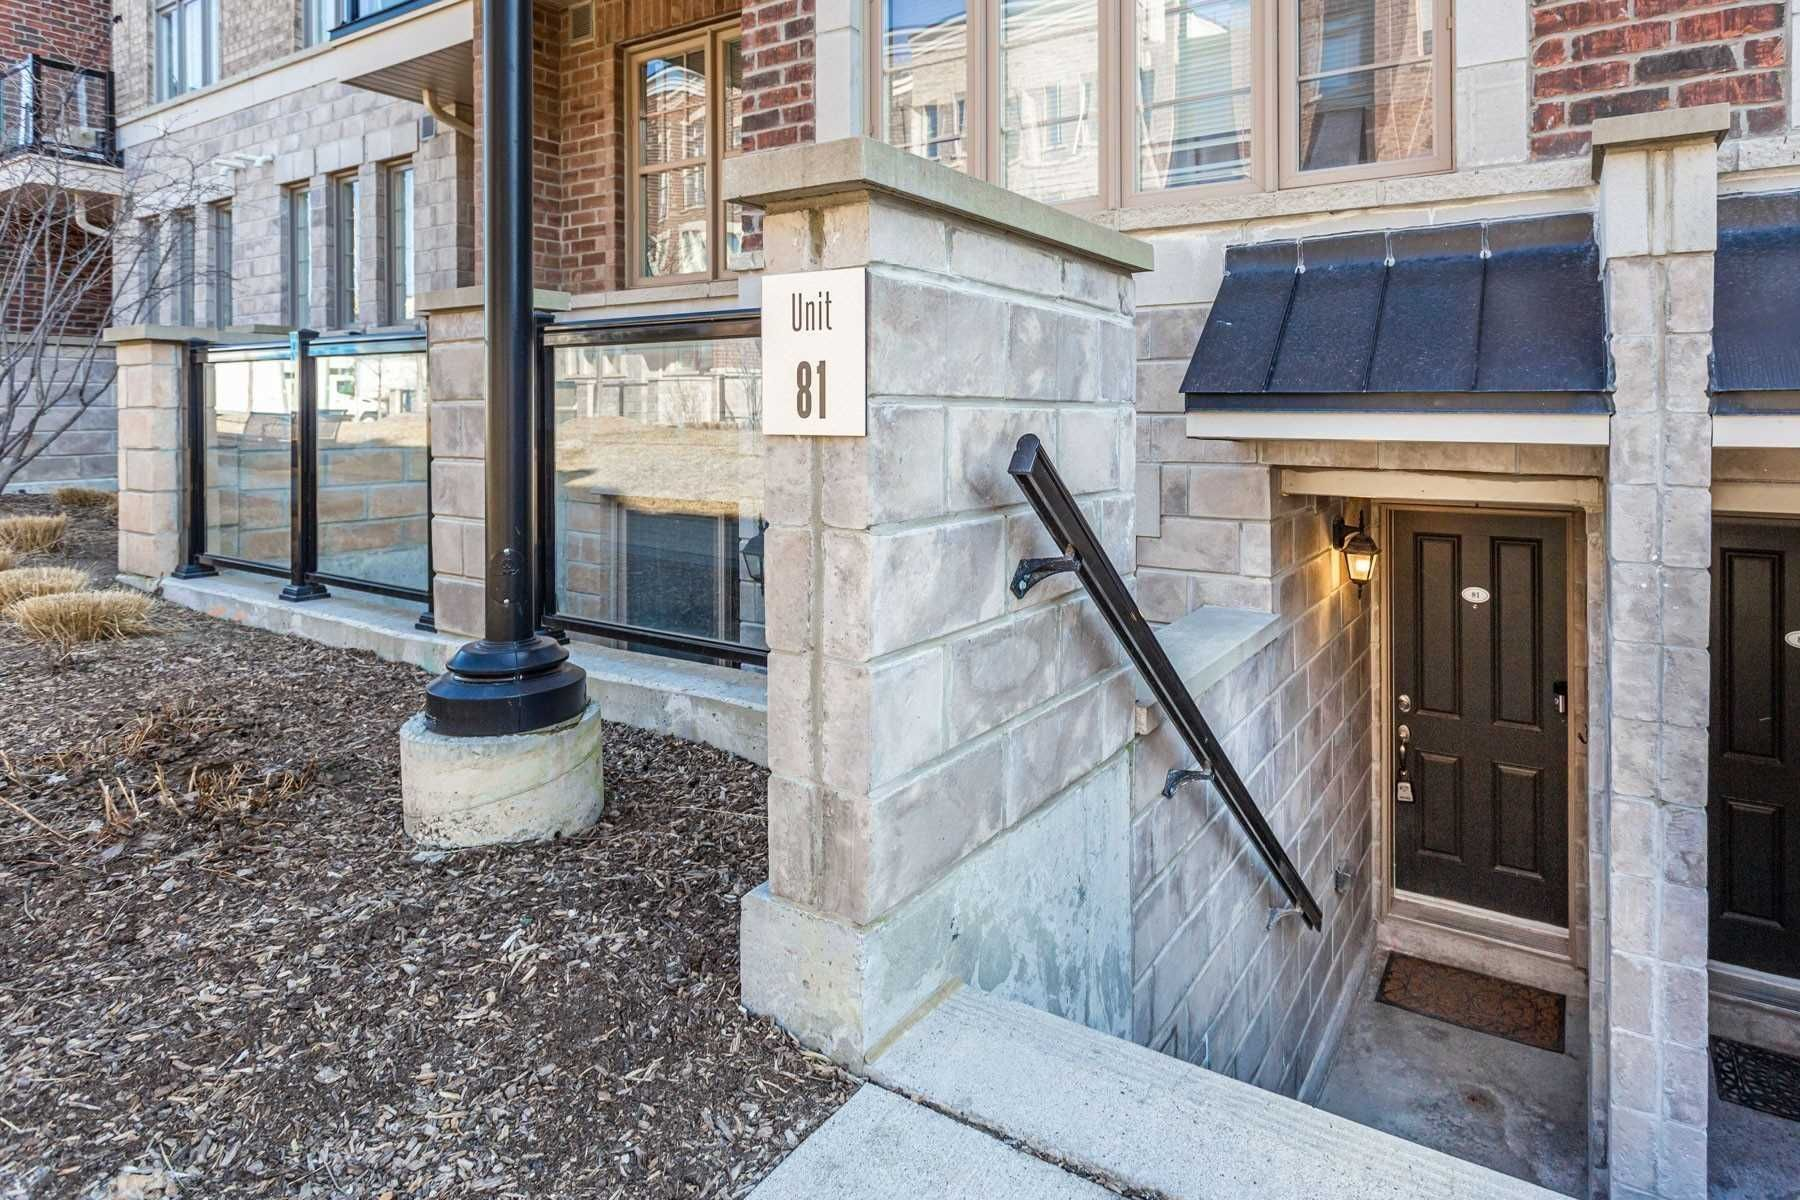 100 Parrotta Dr, unit null for rent in Toronto - image #2